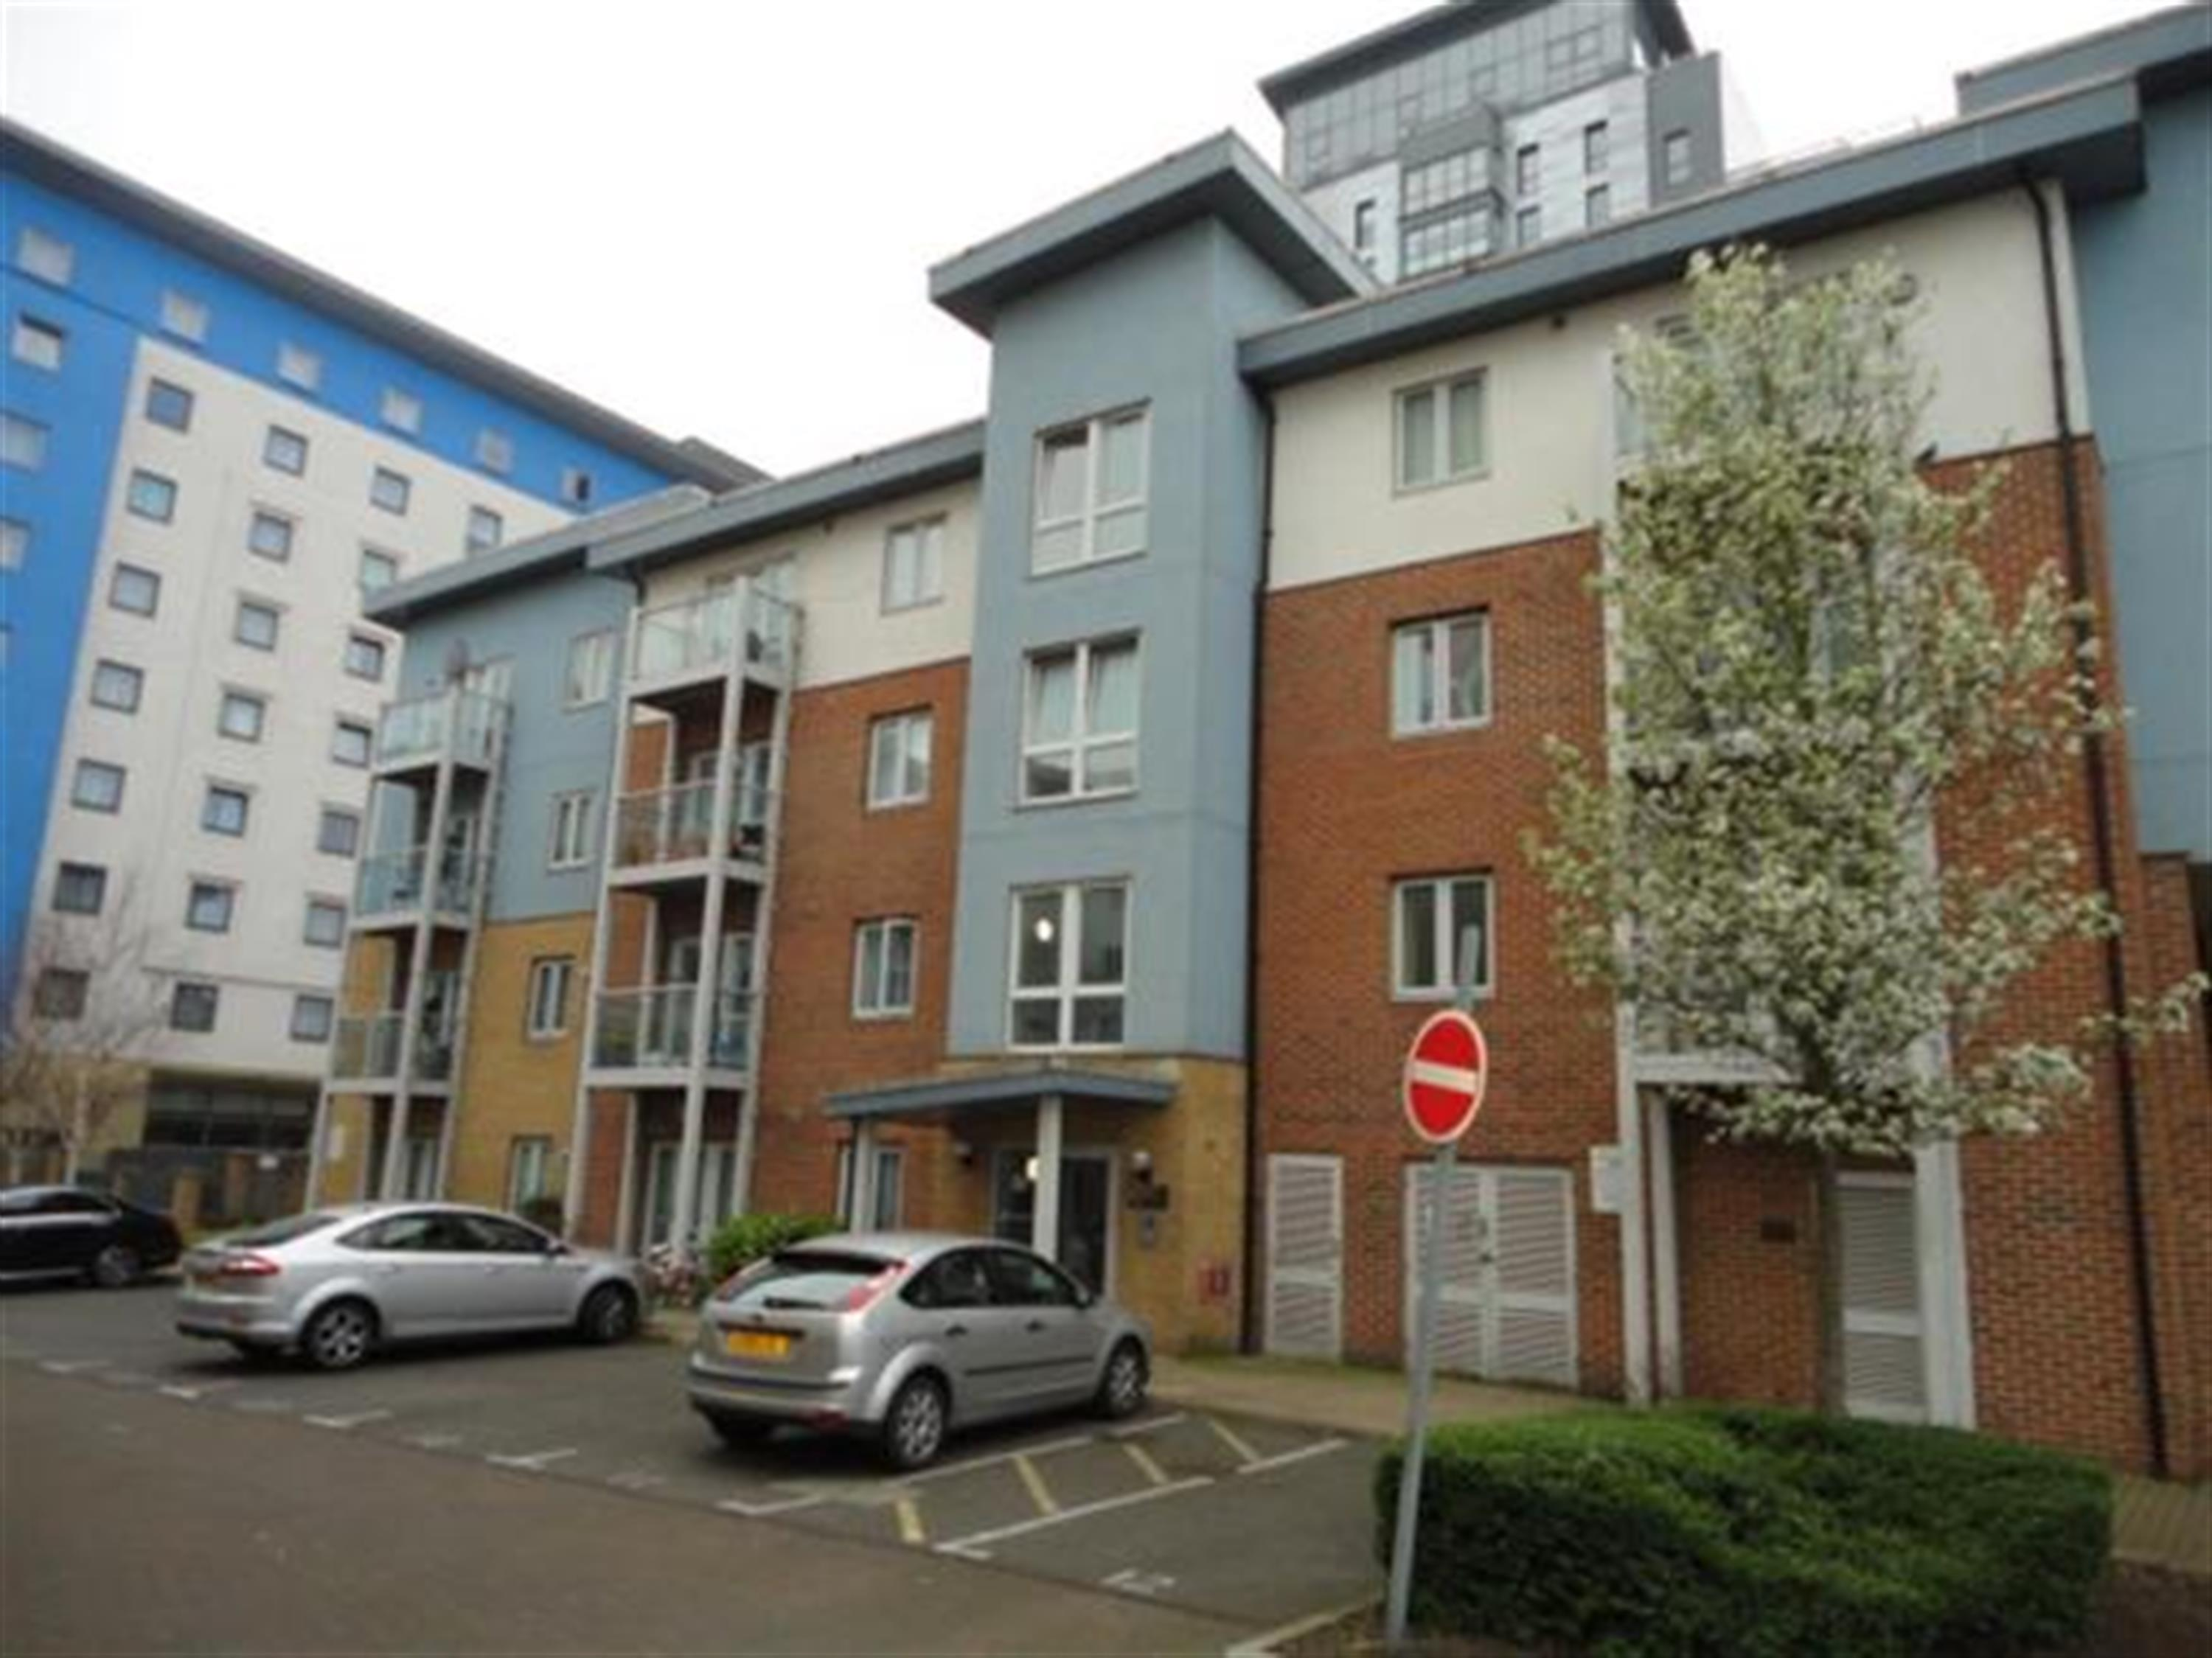 Foundry Court, Mill Place, Slough, Berkshire, SL2 5FZ